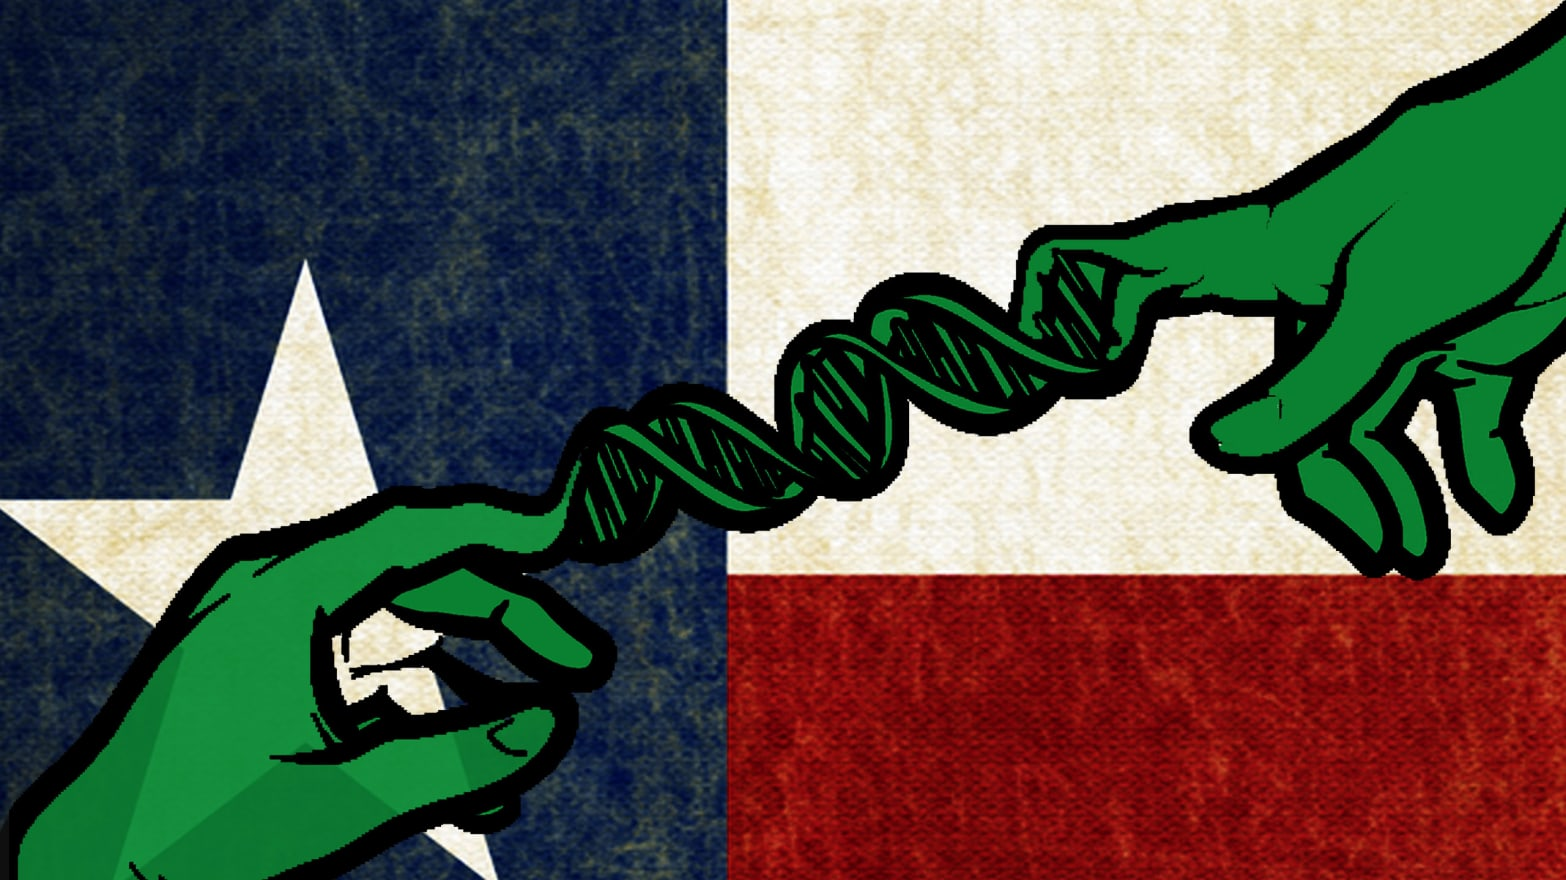 38239c5050dba4 Creationism in Texas Could Go Extinct on Election Day